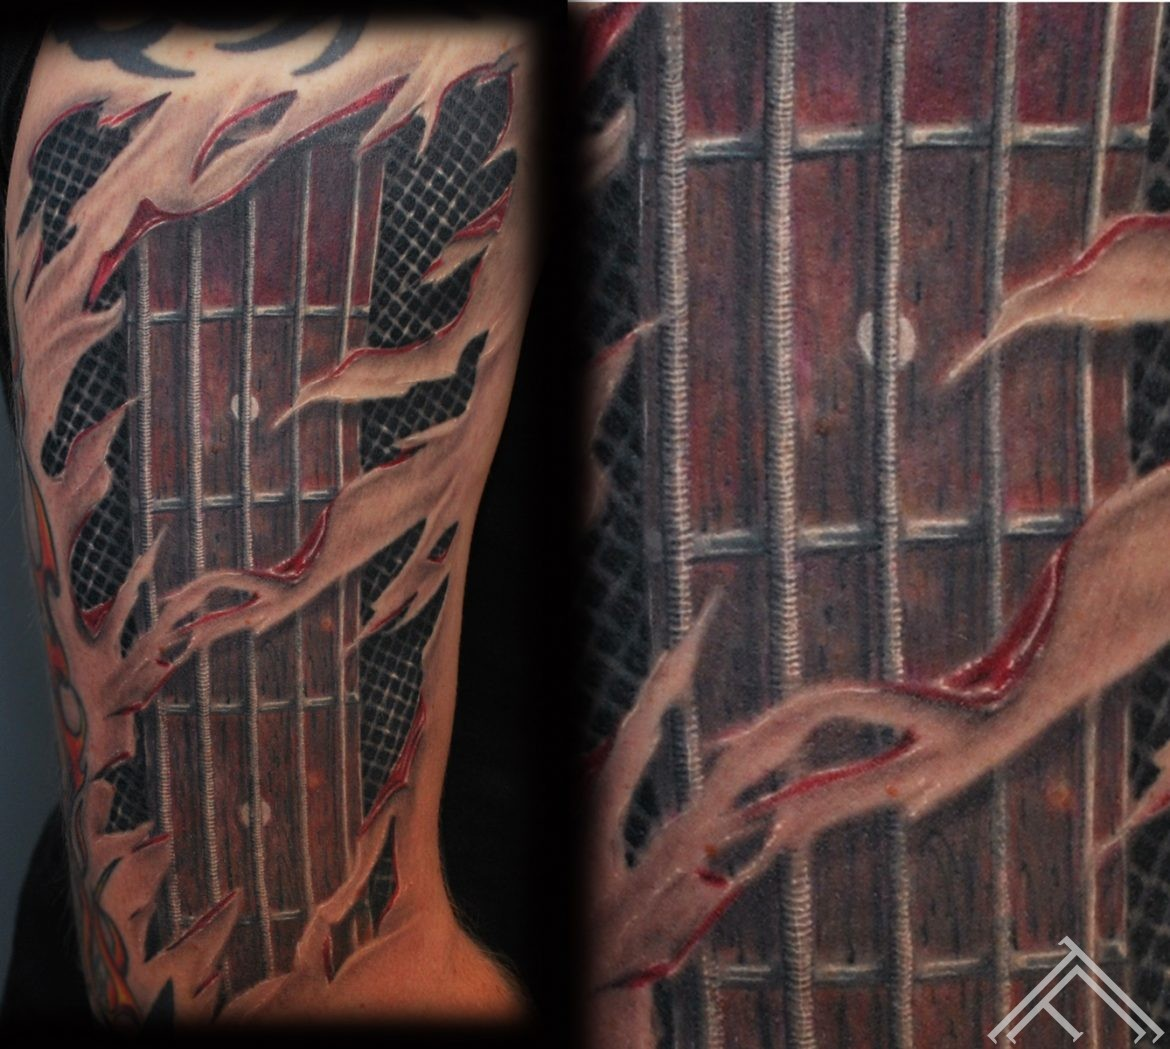 tattoo_bass_guitar_strings_tattoofrequency_tattooshop_rigasaloon_tattoostudio